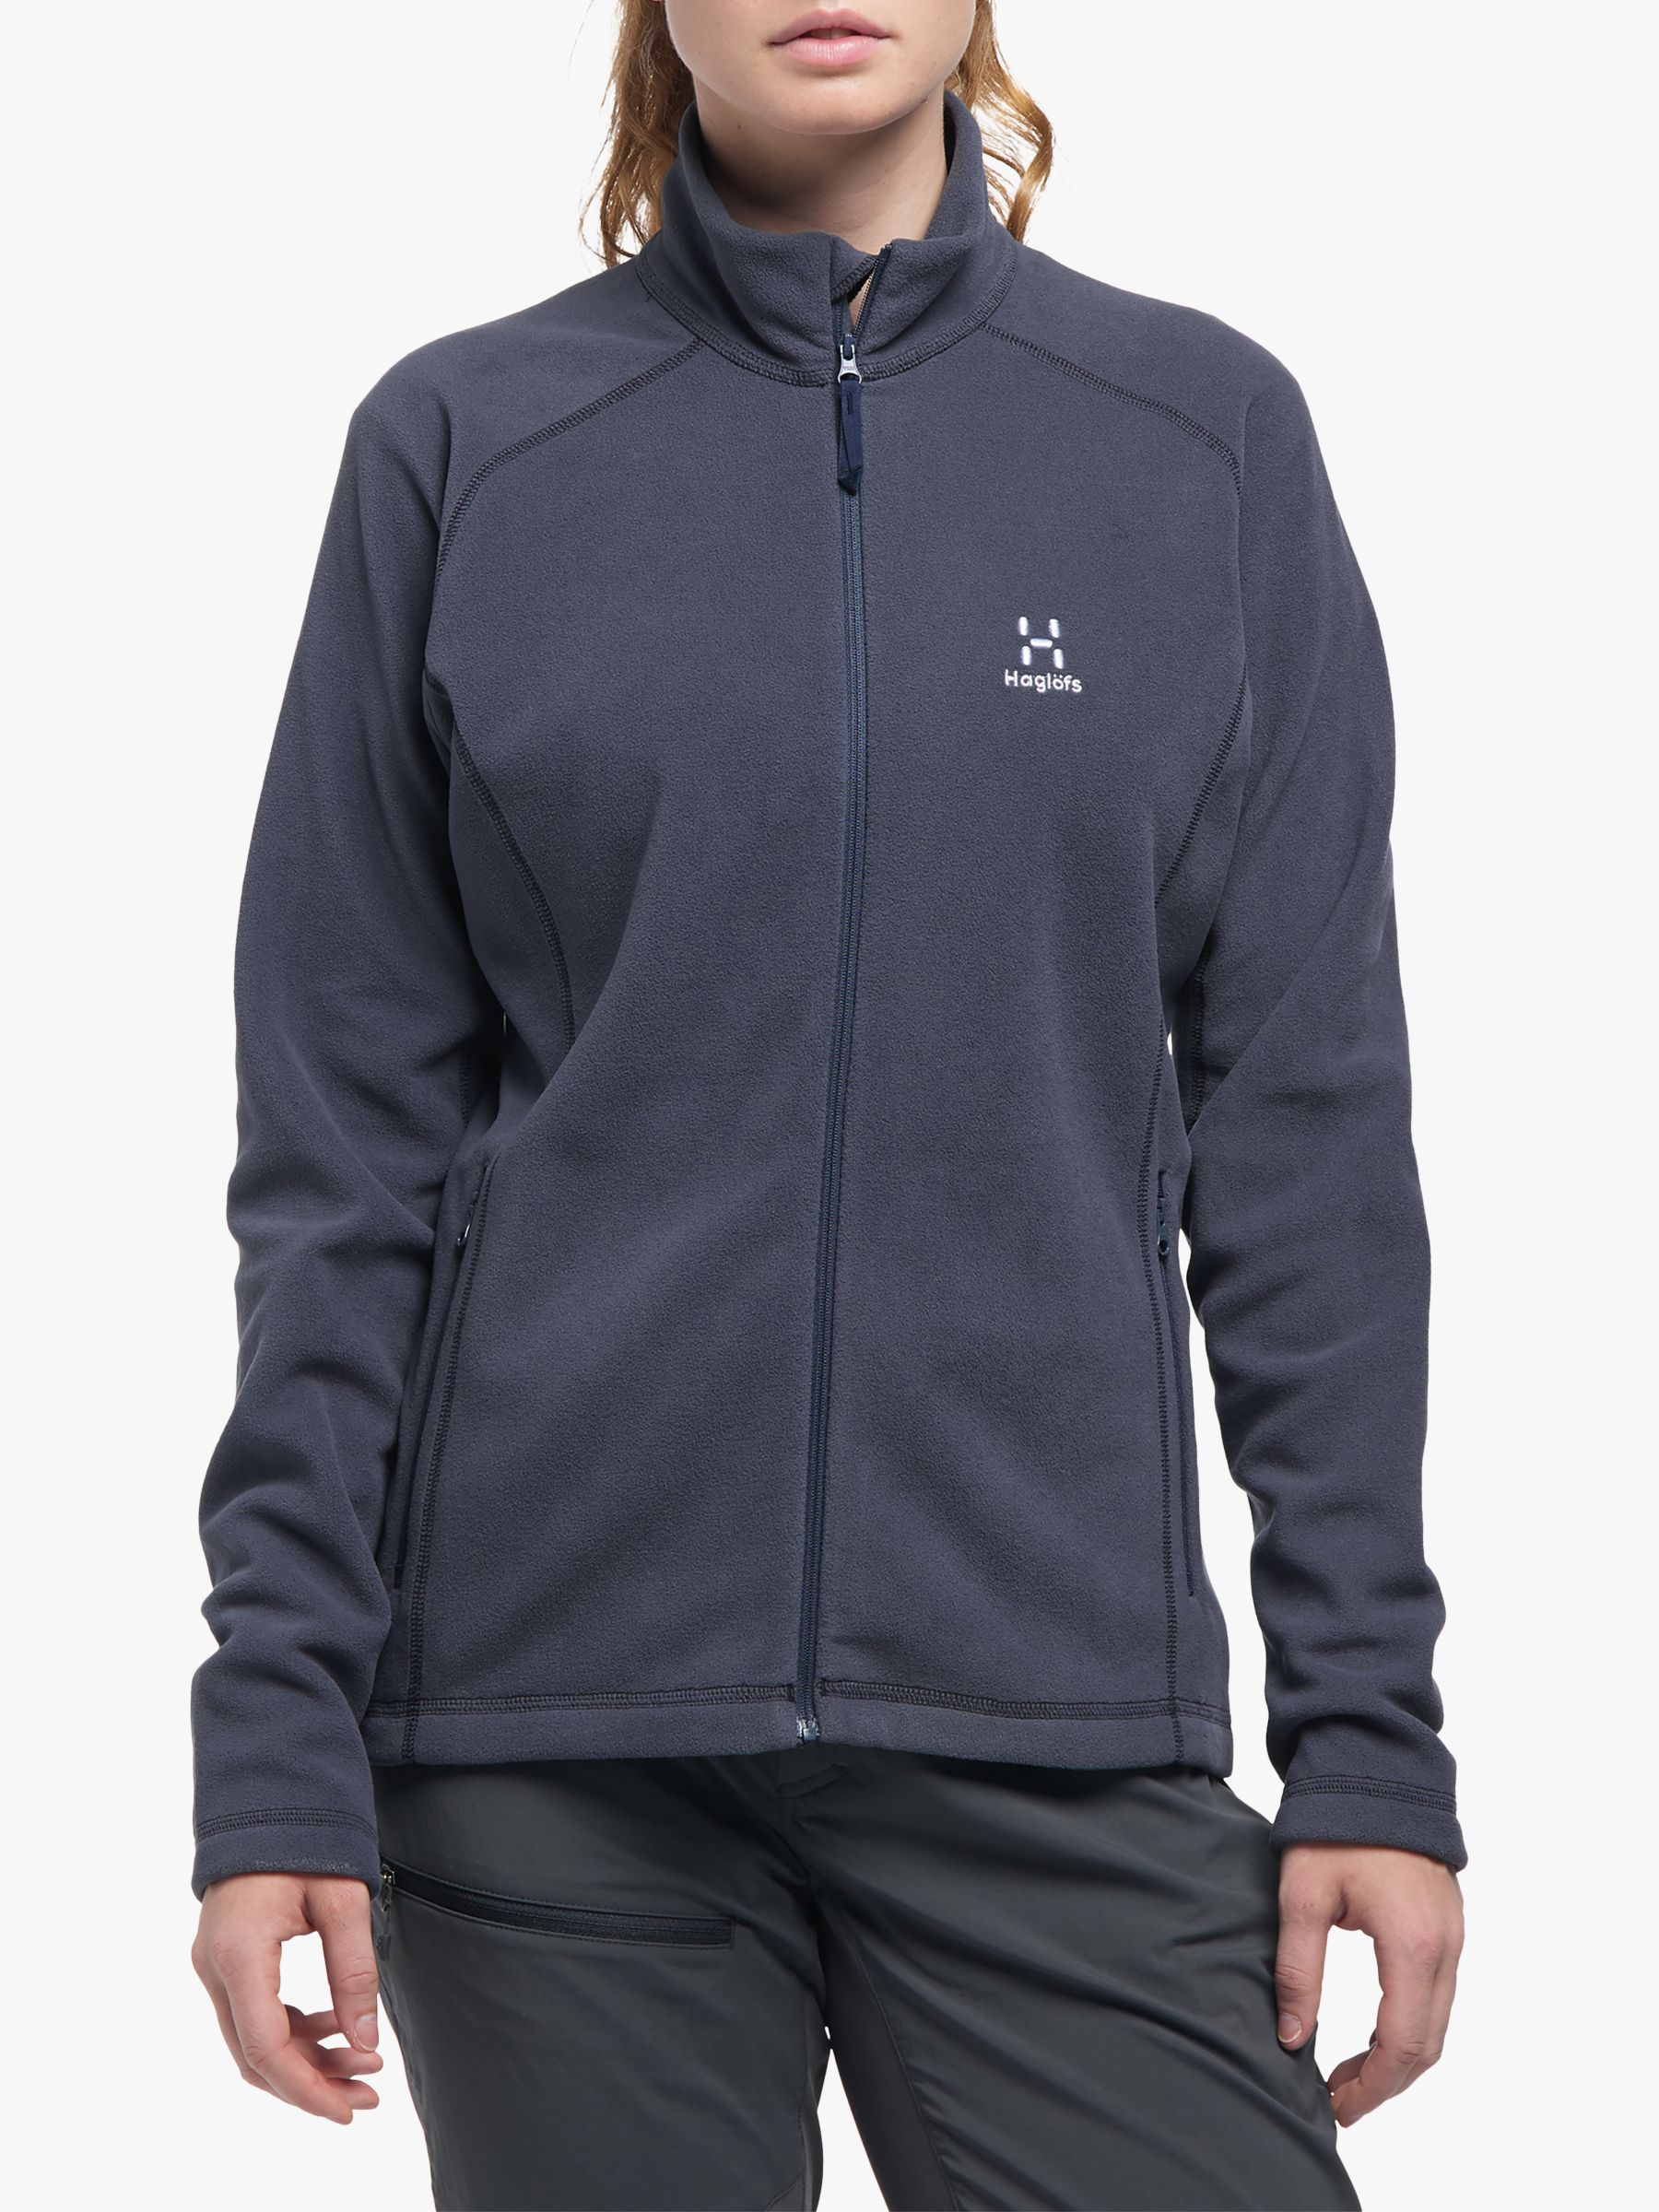 Haglofs Haglöfs Astro Women's Fleece Jacket